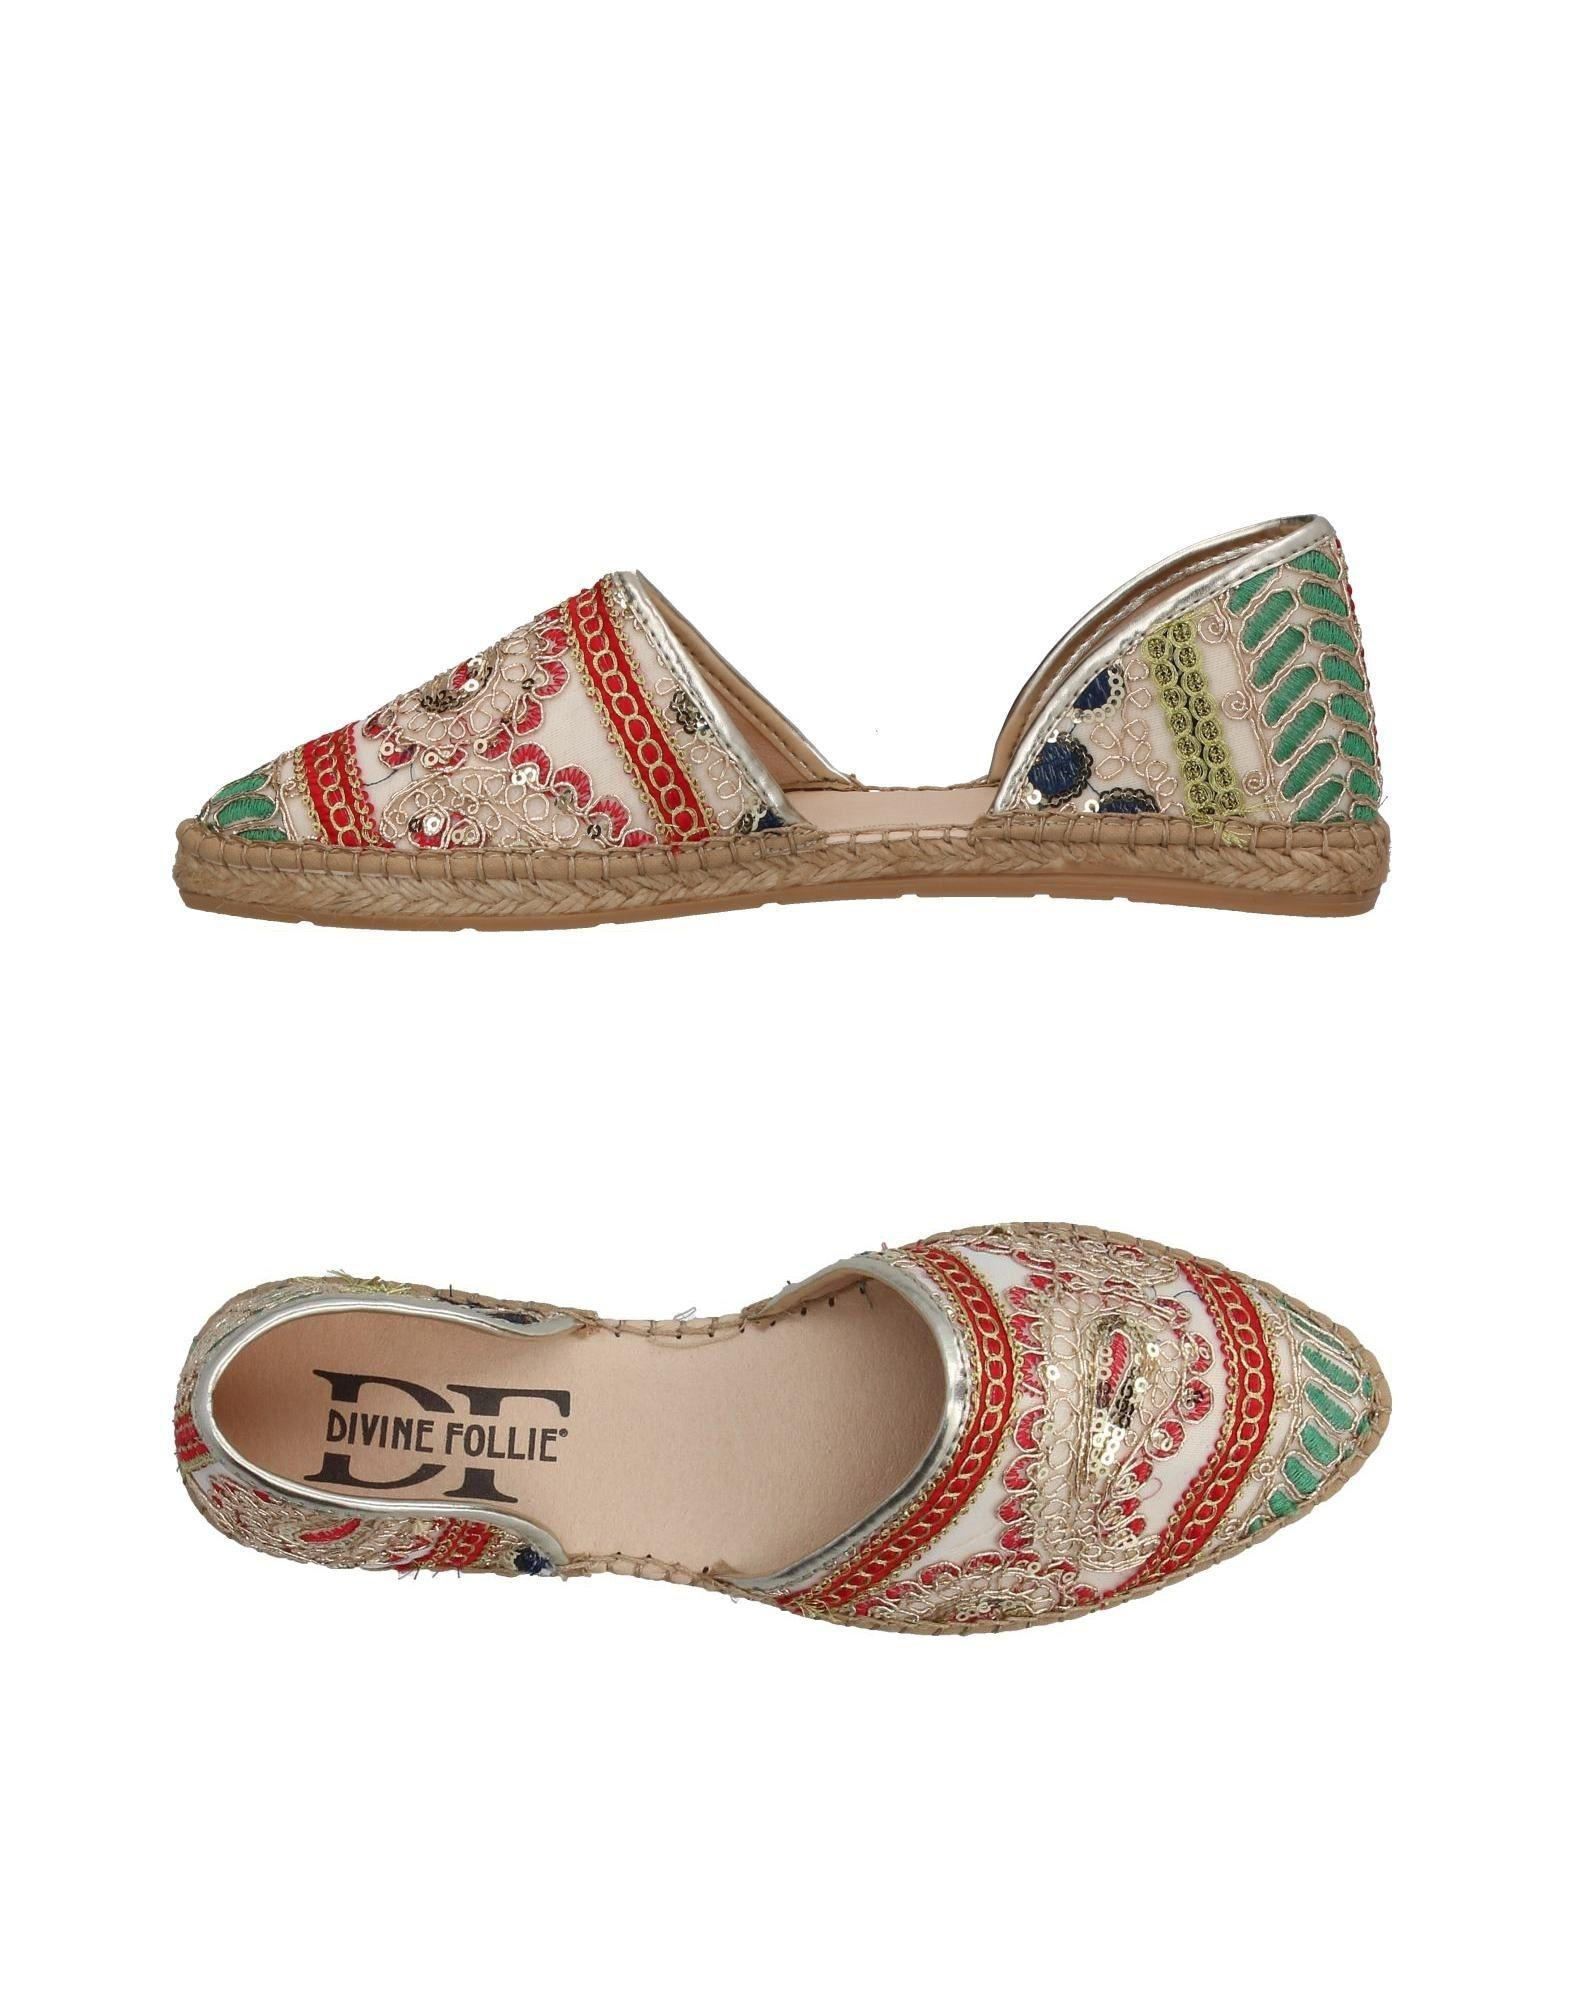 FOOTWEAR - Espadrilles Divine Follie Sale Excellent For Sale Cheap Real Sale Original Shop Offer Cheap Price Low Shipping Fee nXCAv